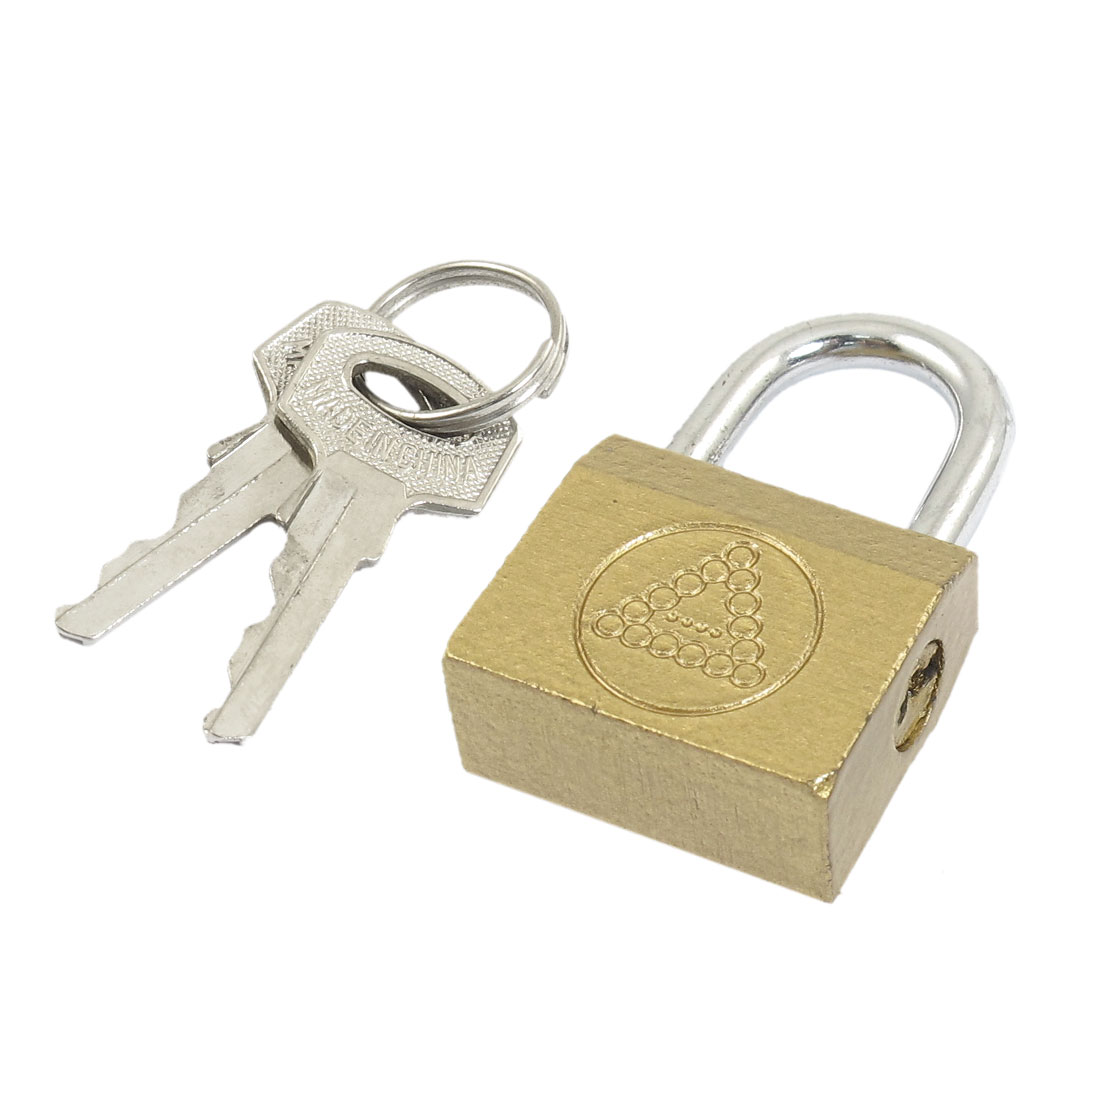 Gold Tone Cabinet Furniture Packsack Safety Brass Padlock w 2 Pcs Keys